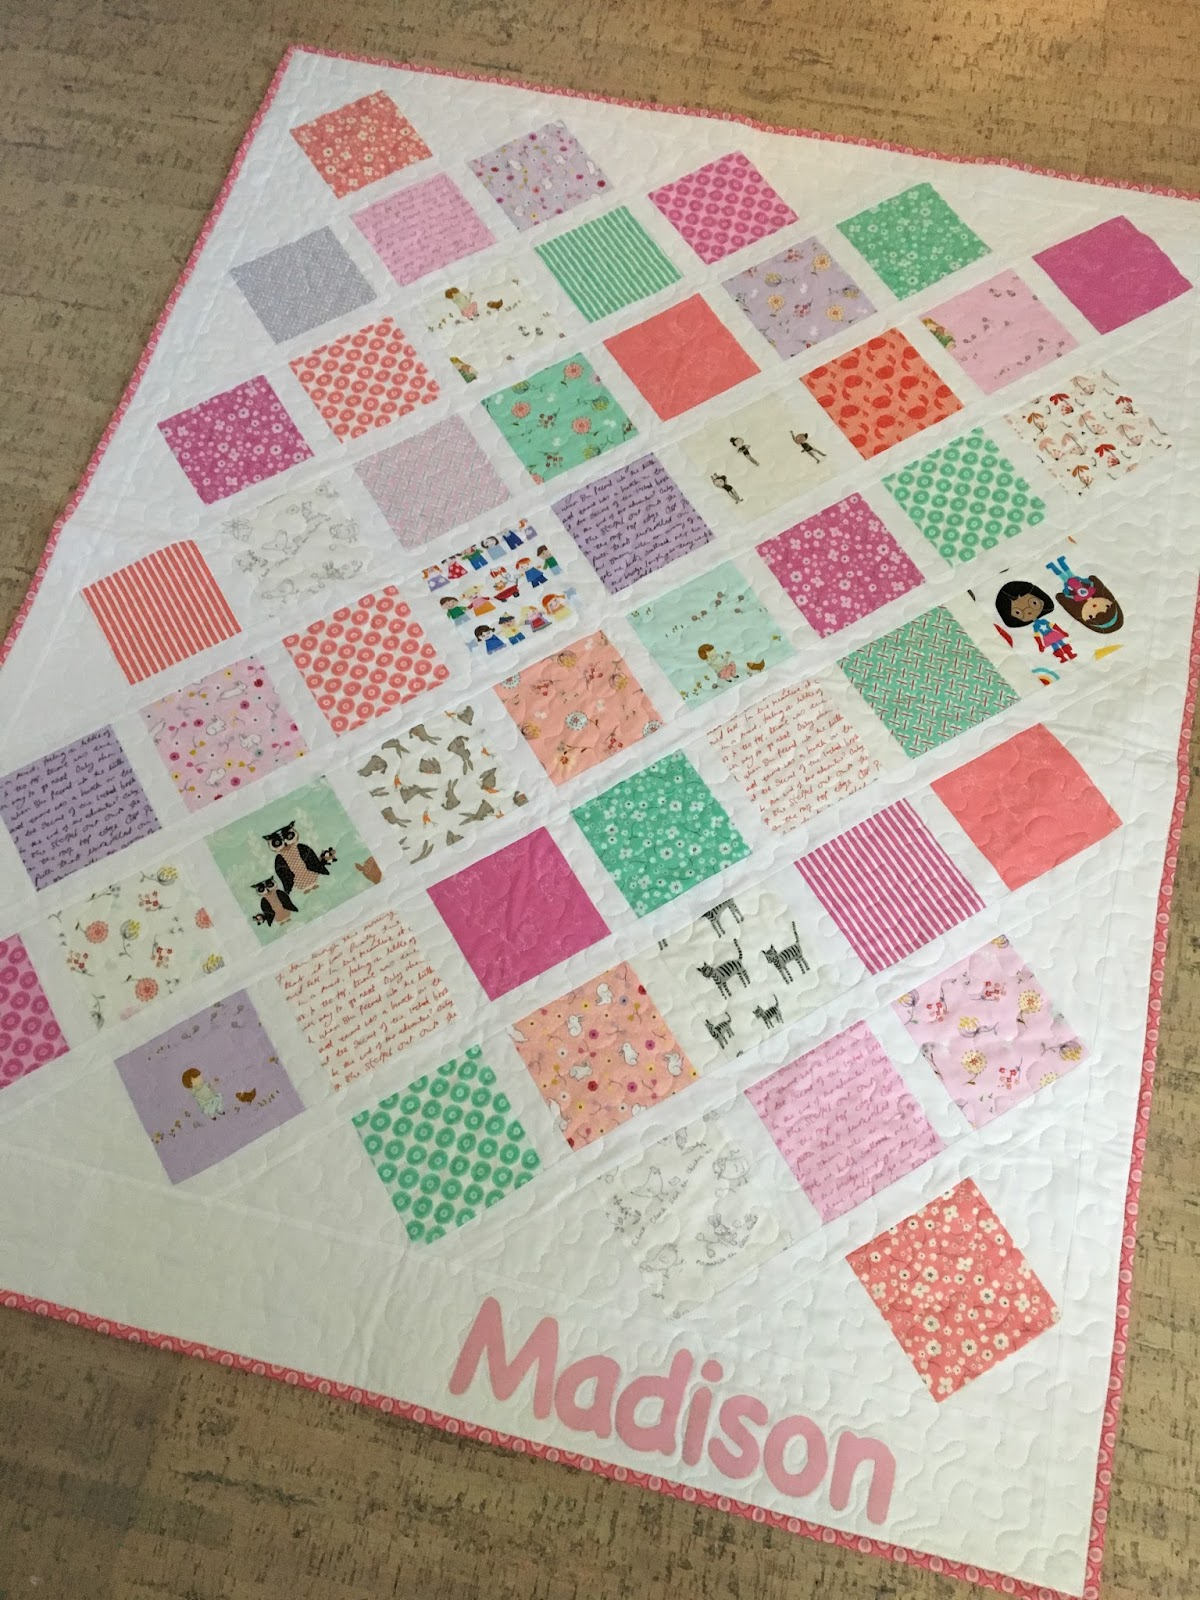 Kayakquilting the pattern is amy smarts lattice baby quit a free tutorial on her web site diary of a quilter its a great use of charm squares and the on point baditri Choice Image